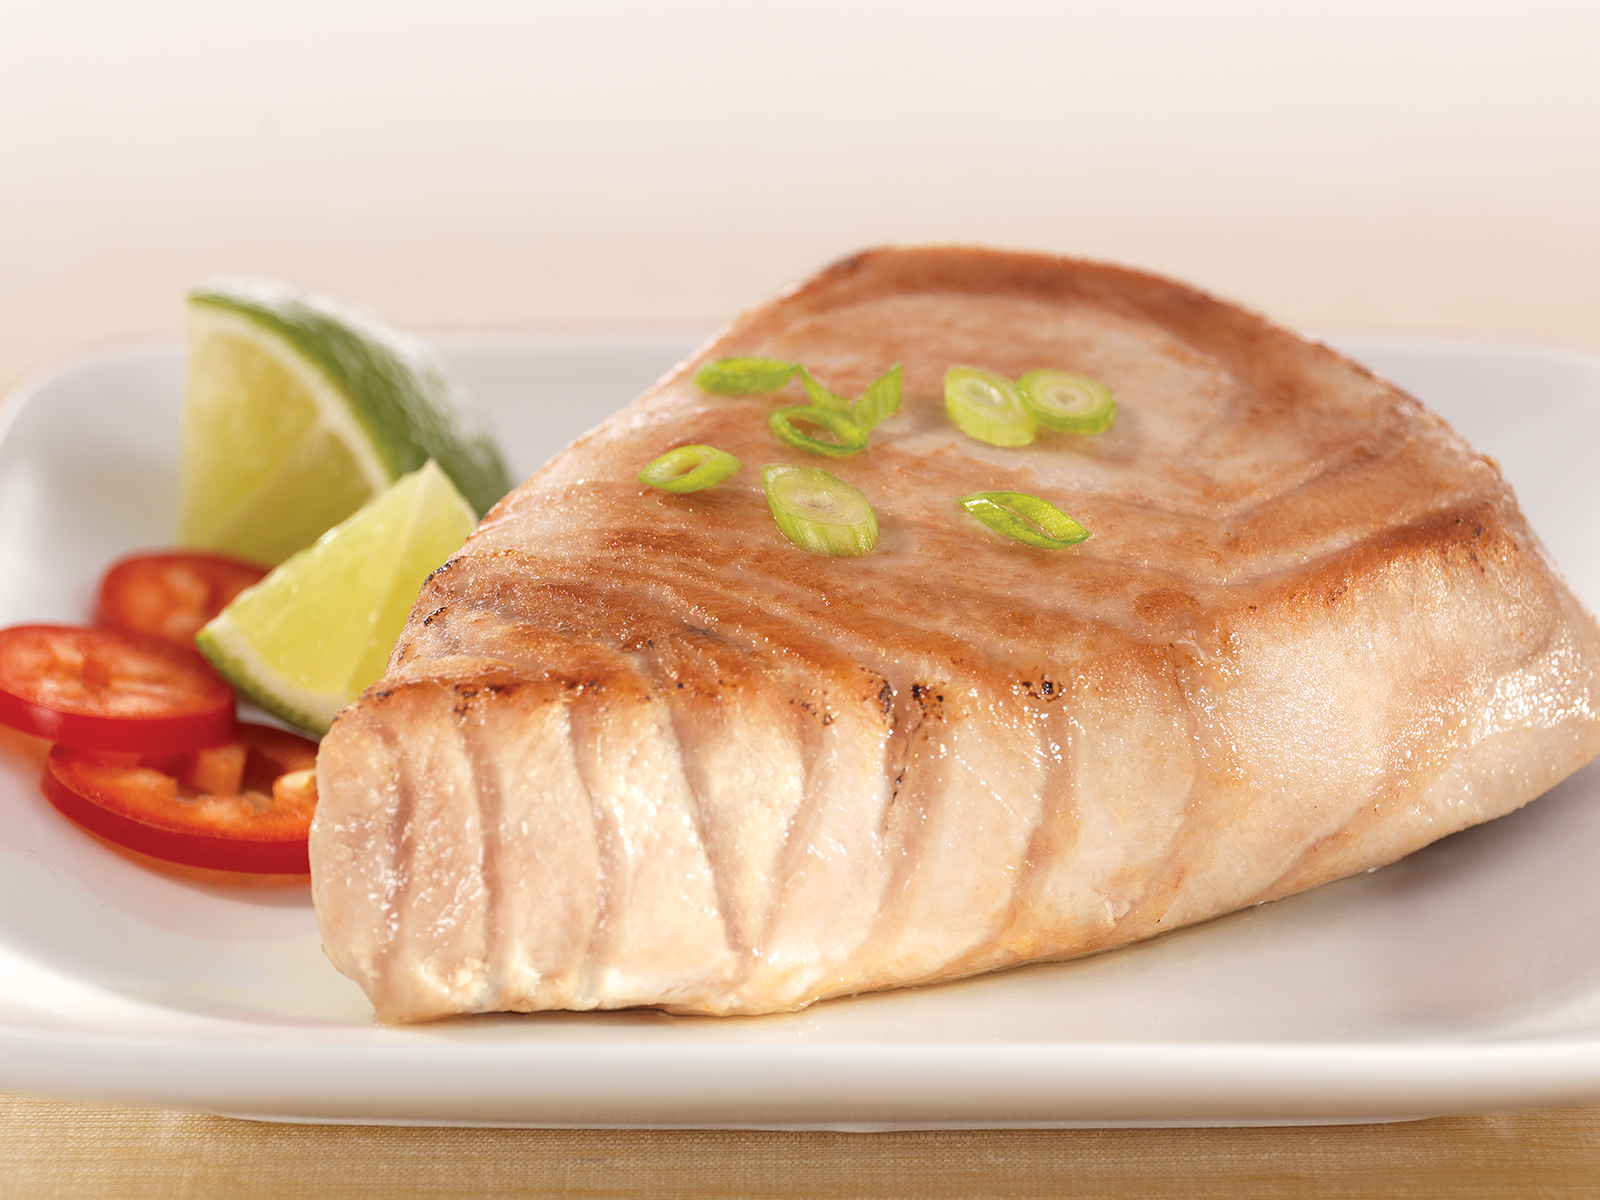 Red Tuna Steak 4 oz (1/10 lb) 411693